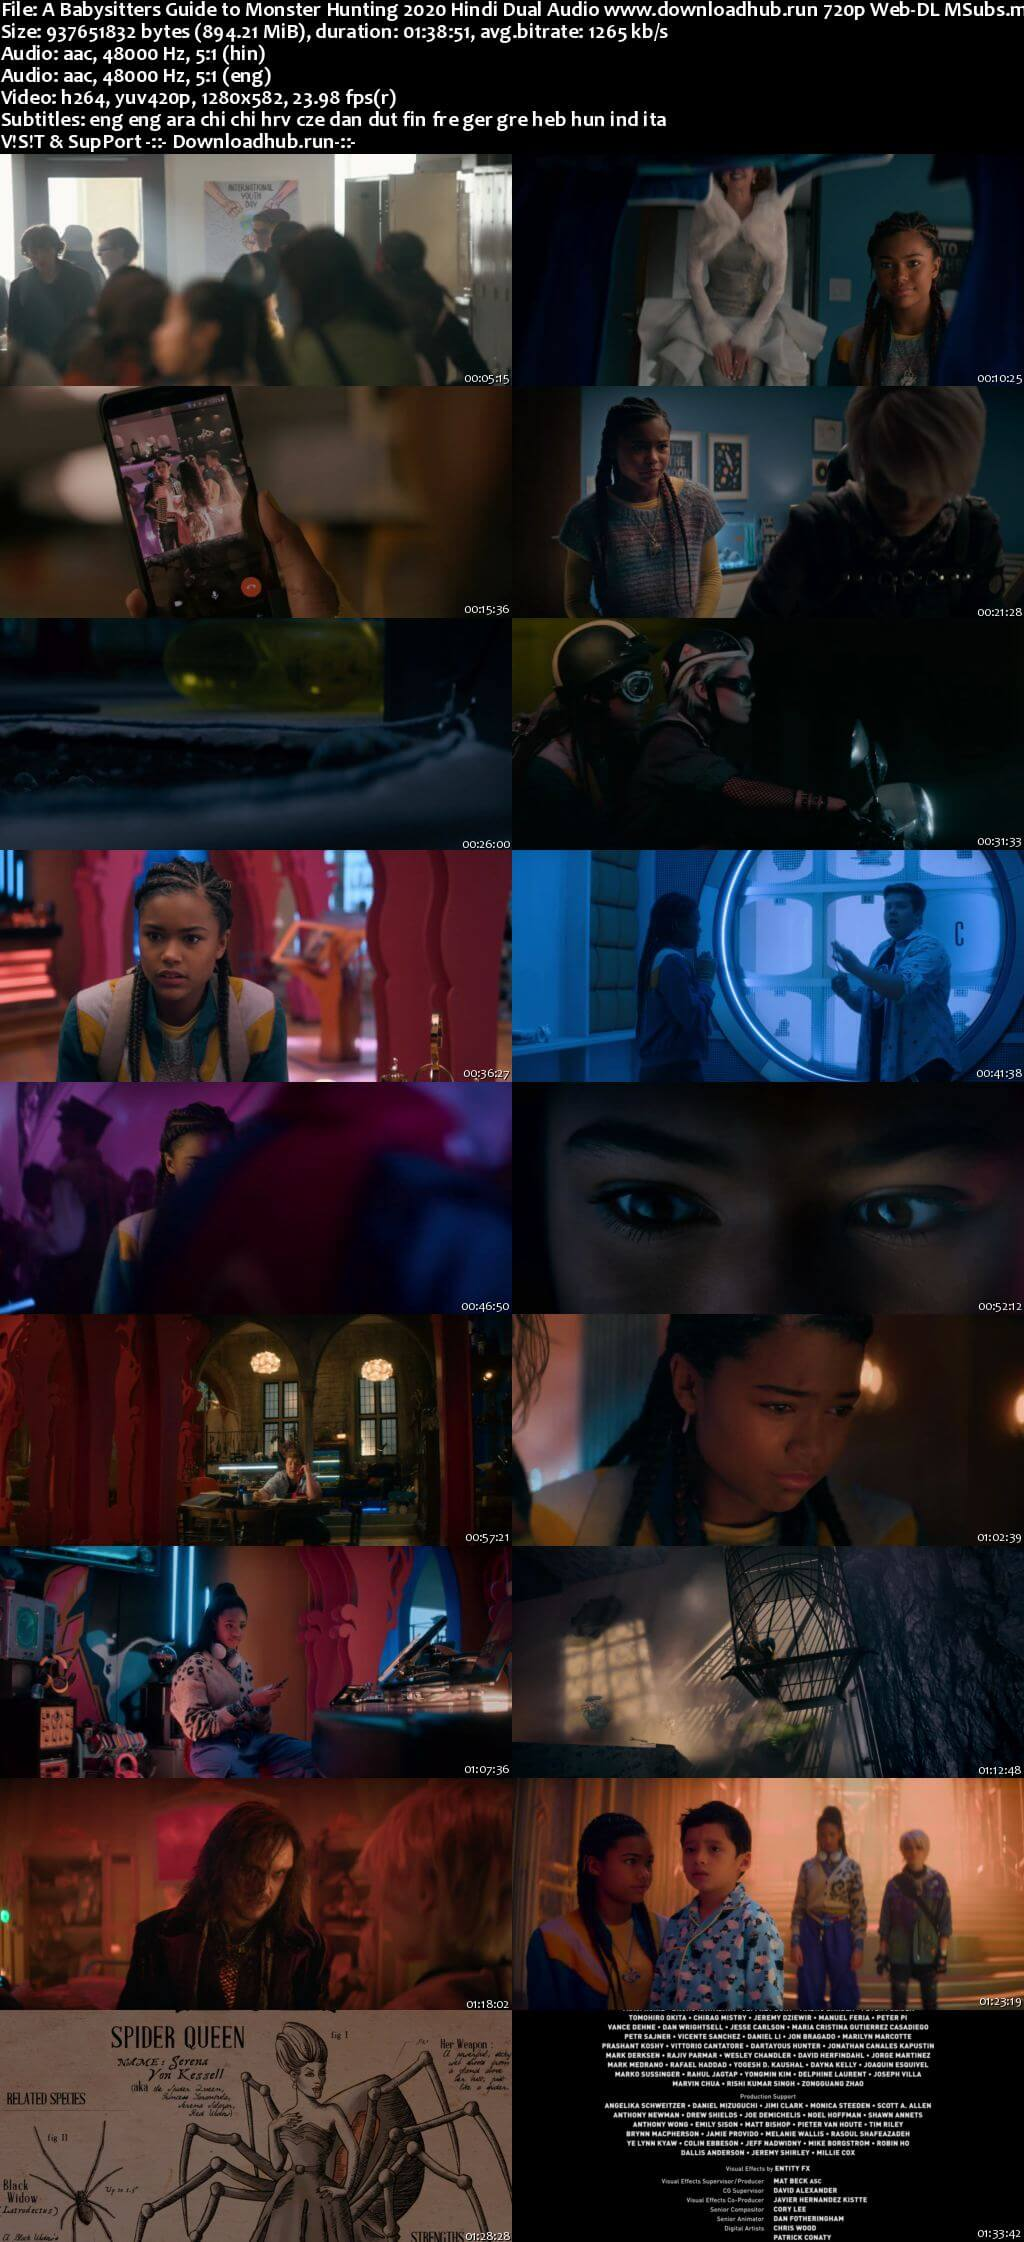 A Babysitters Guide to Monster Hunting 2020 Hindi Dual Audio 720p Web-DL MSubs